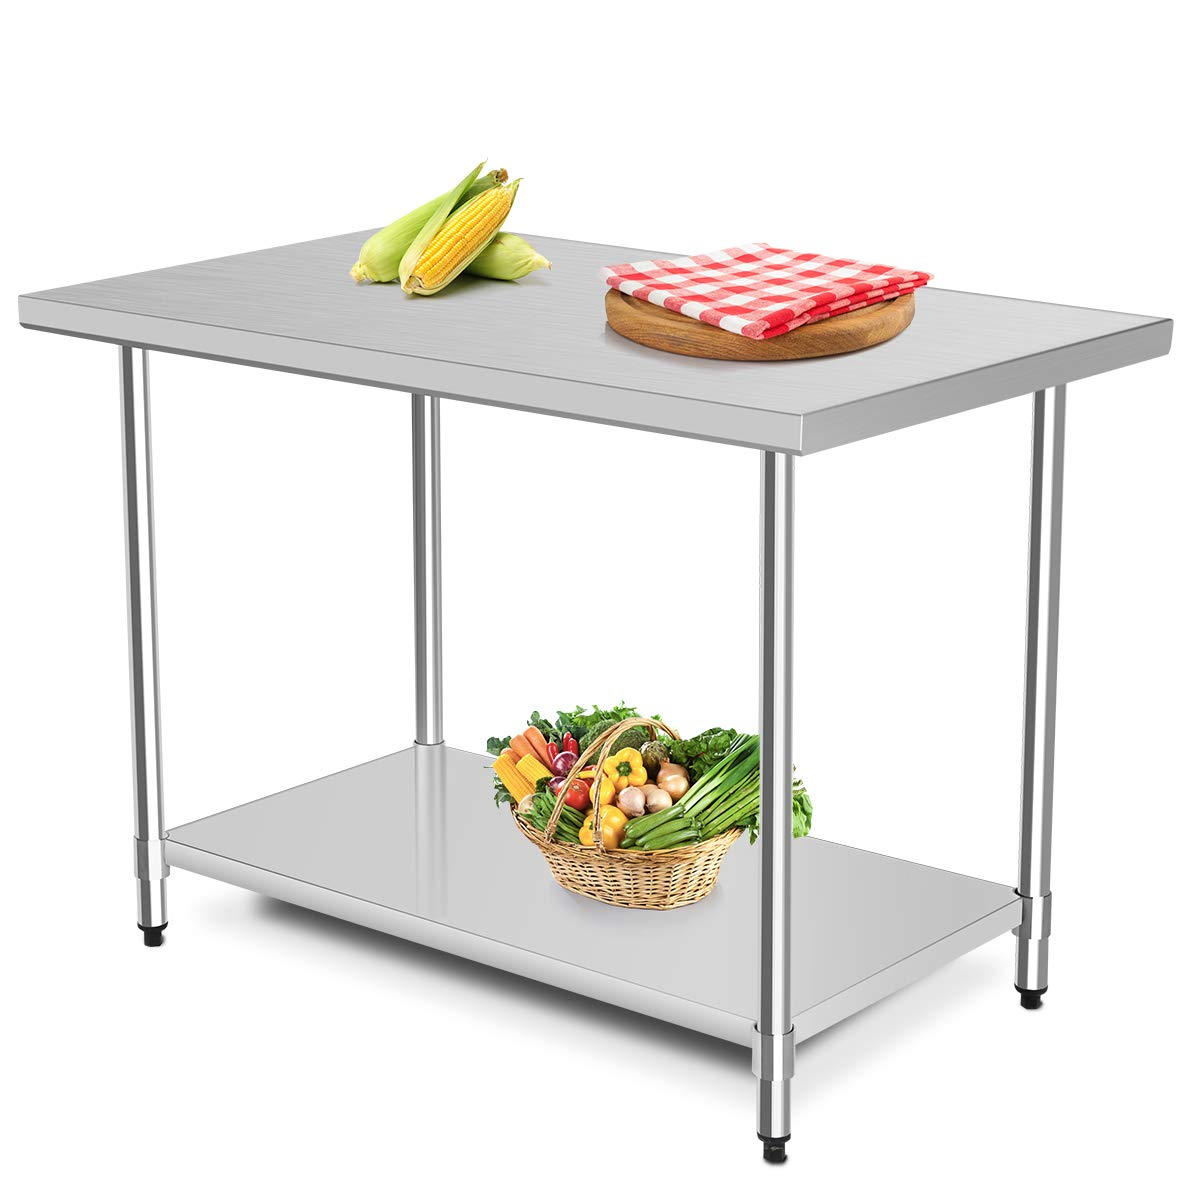 """Giantex Food Prep Table Commercial Stainless Steel Work Table Kitchen Storage Table with Adjustable Shelf and Feet 30""""x 48"""""""